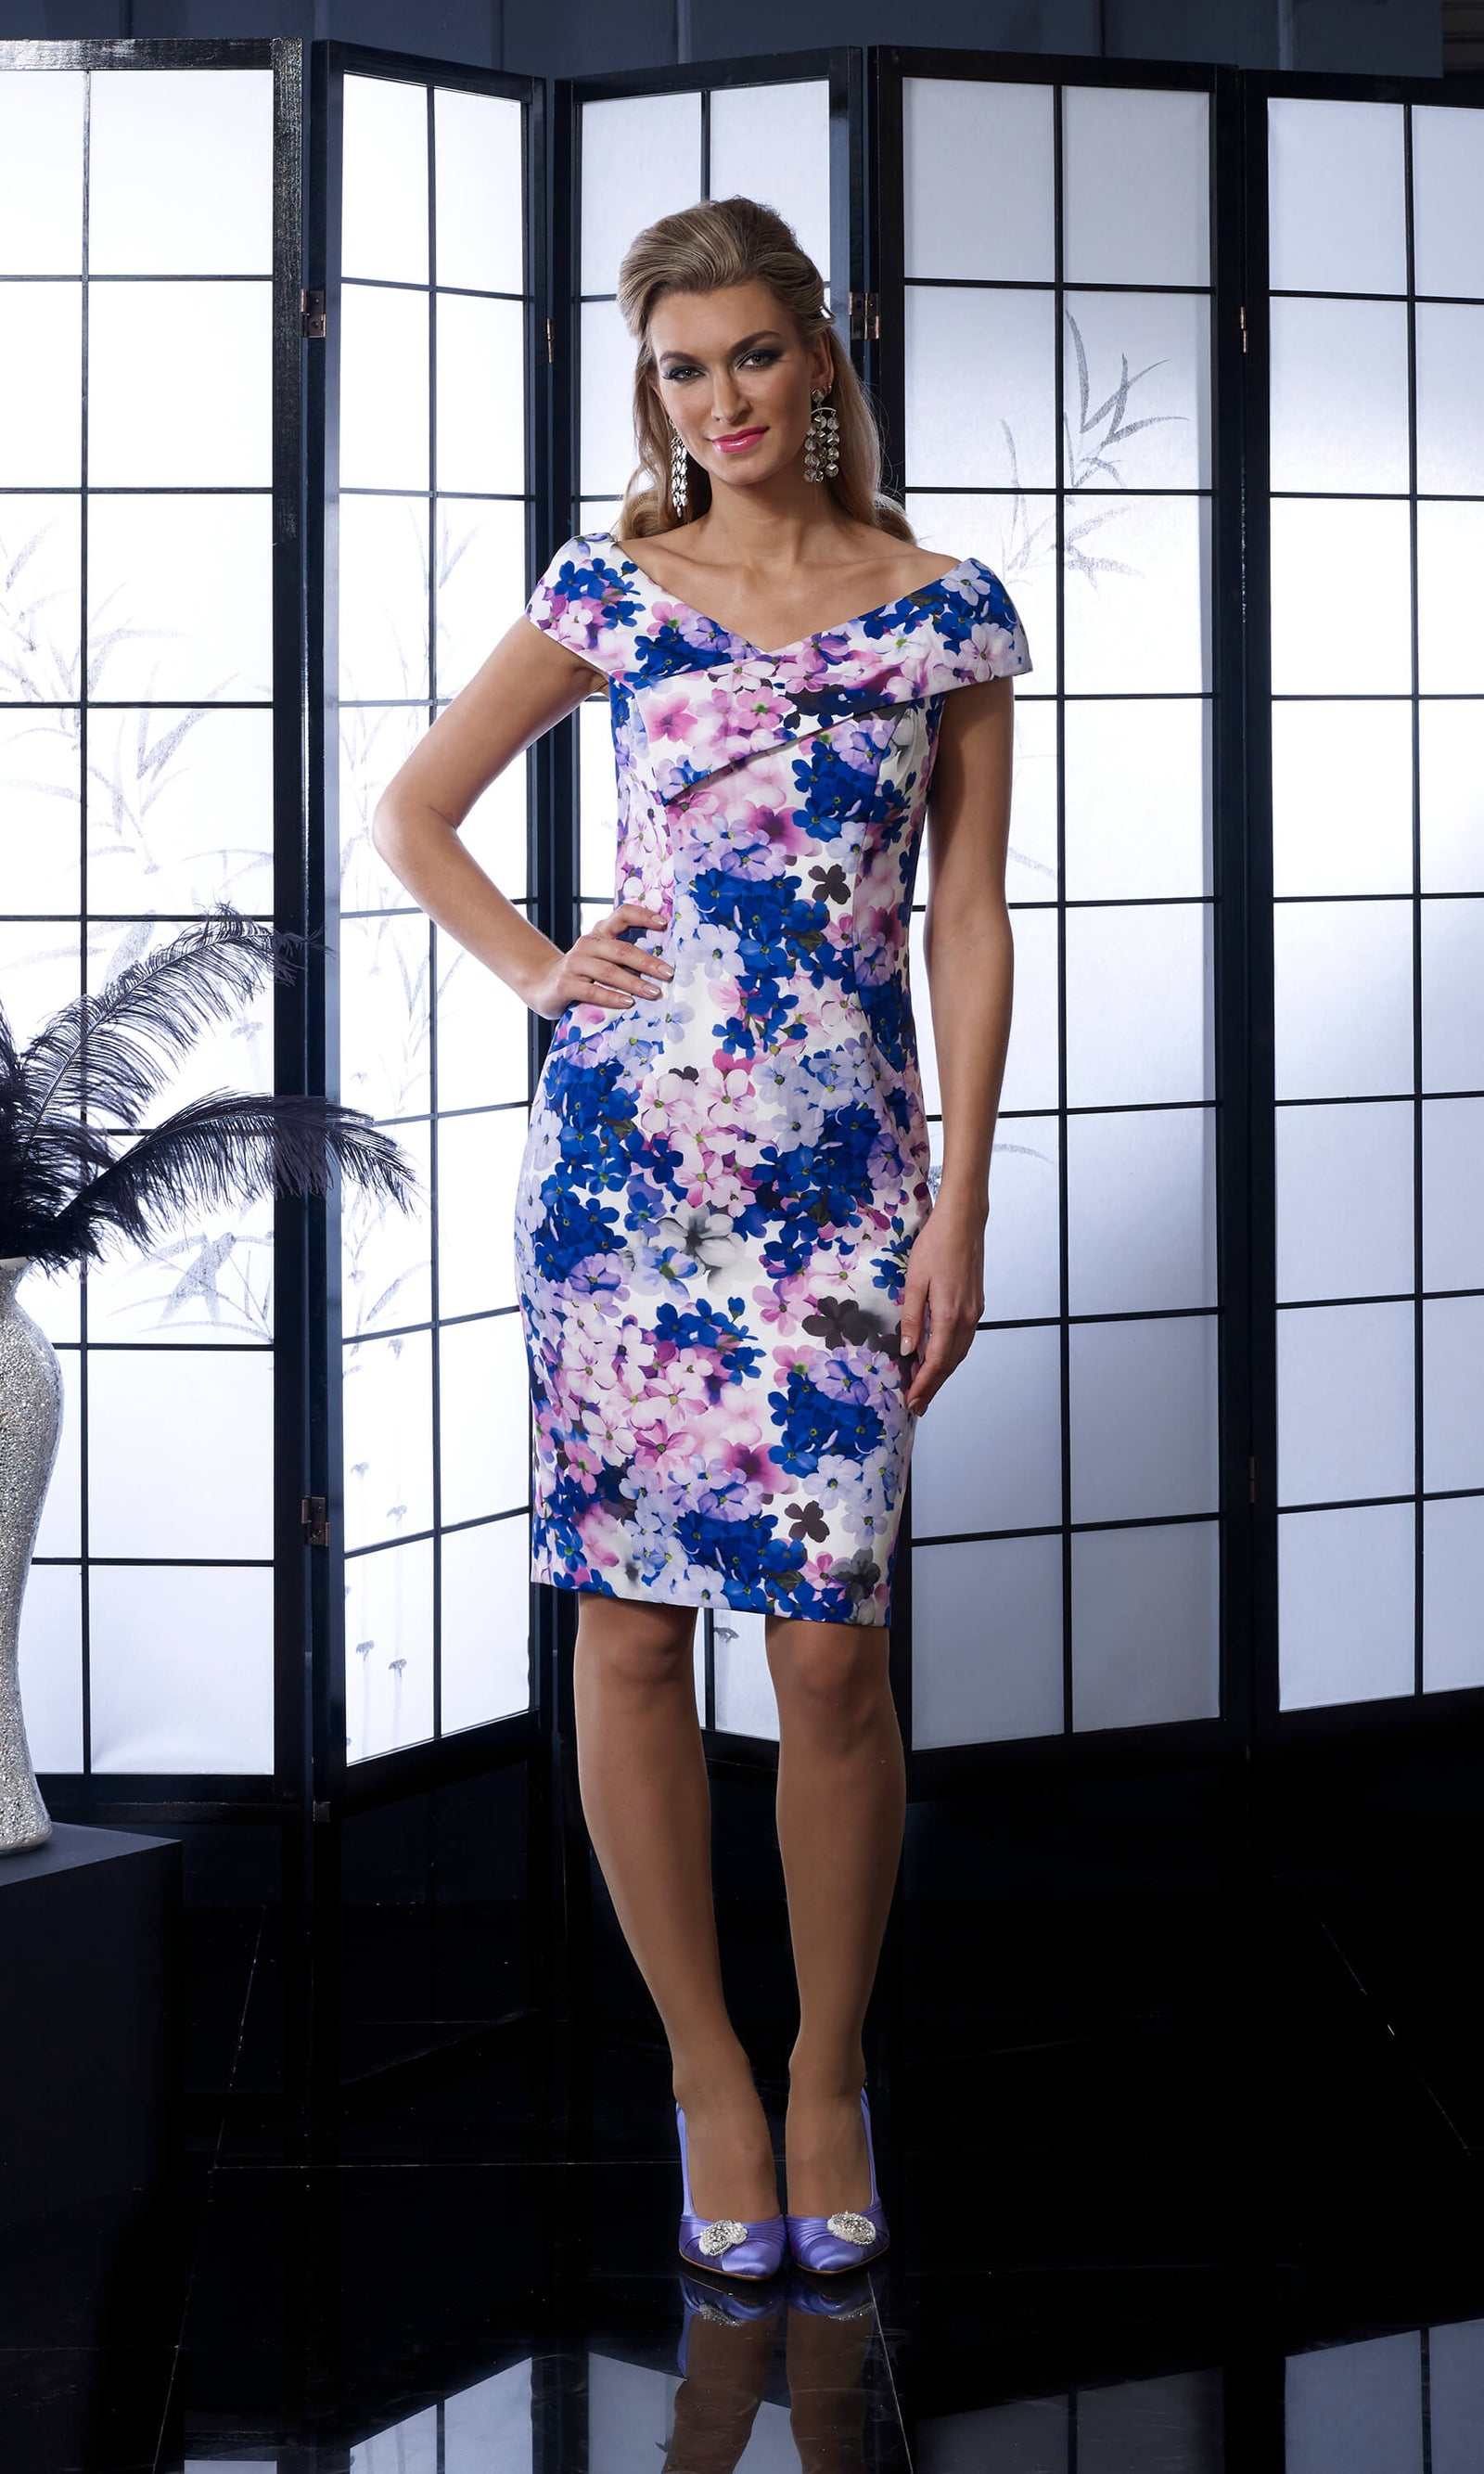 VO5008 Violet Veromia Occasions Print Pencil Dress